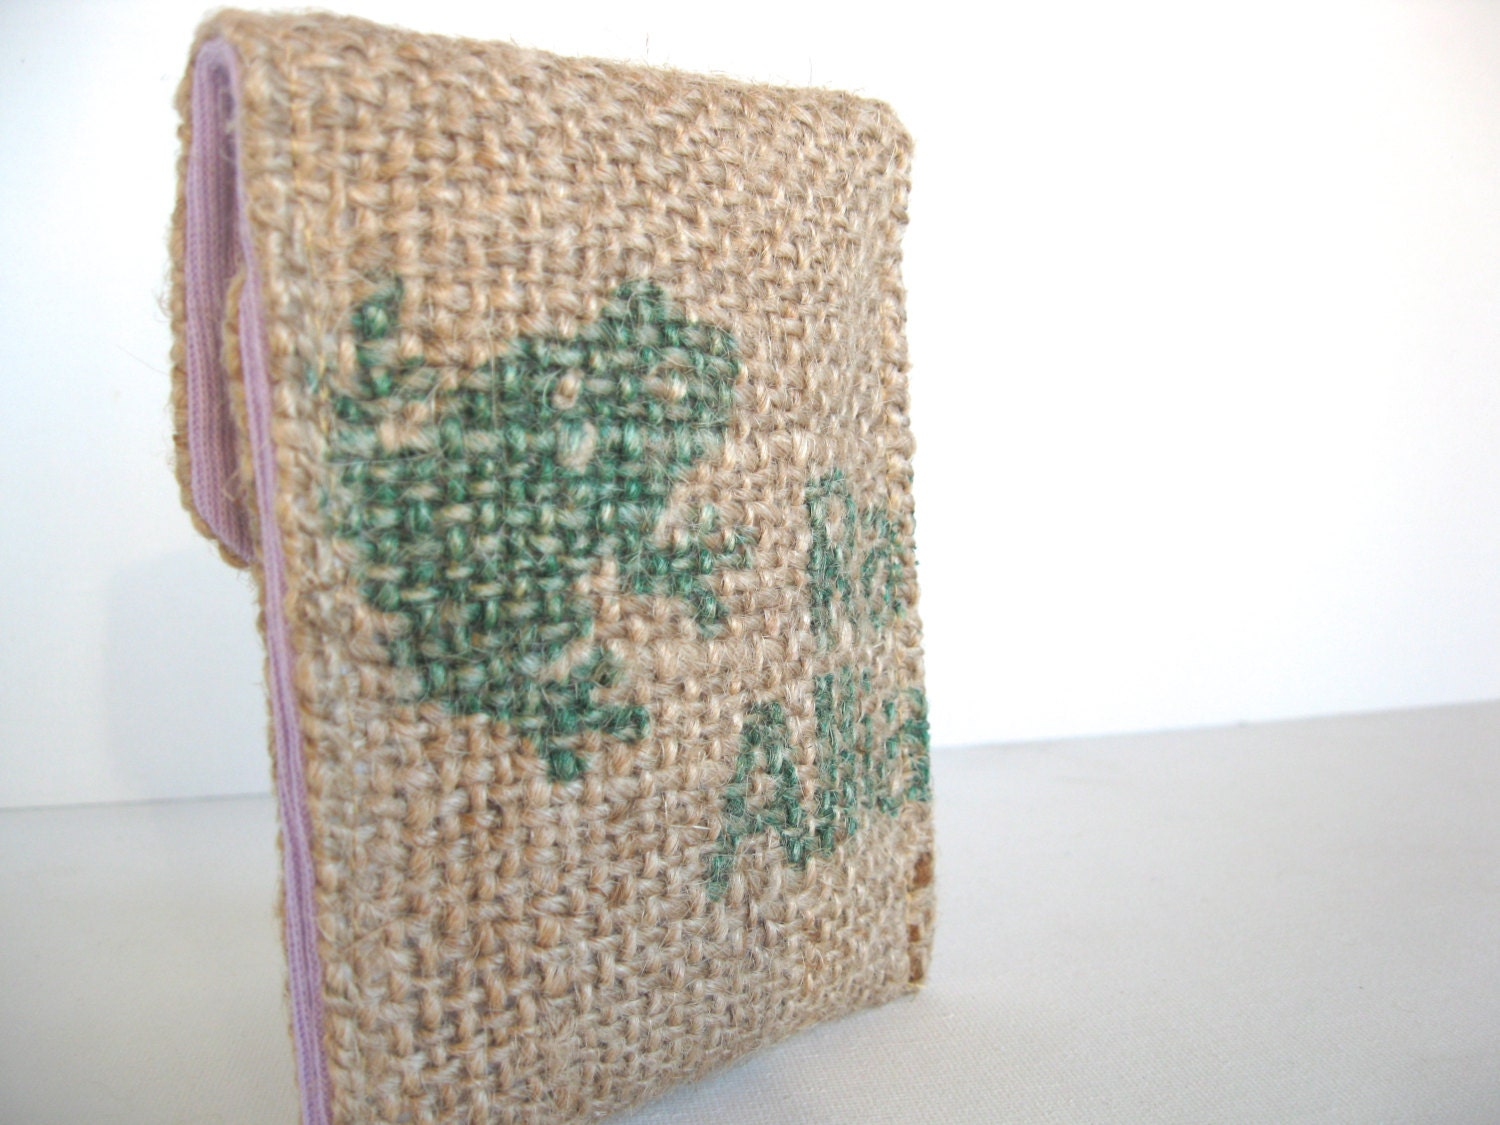 Lavender. Eco Friendly. Iphone. Cozy. Upcycled. Burlap. Tshirt. Spring Fashion. Frog. Earth Day. For Her. Mothers Day. Teen.  Gift Idea.